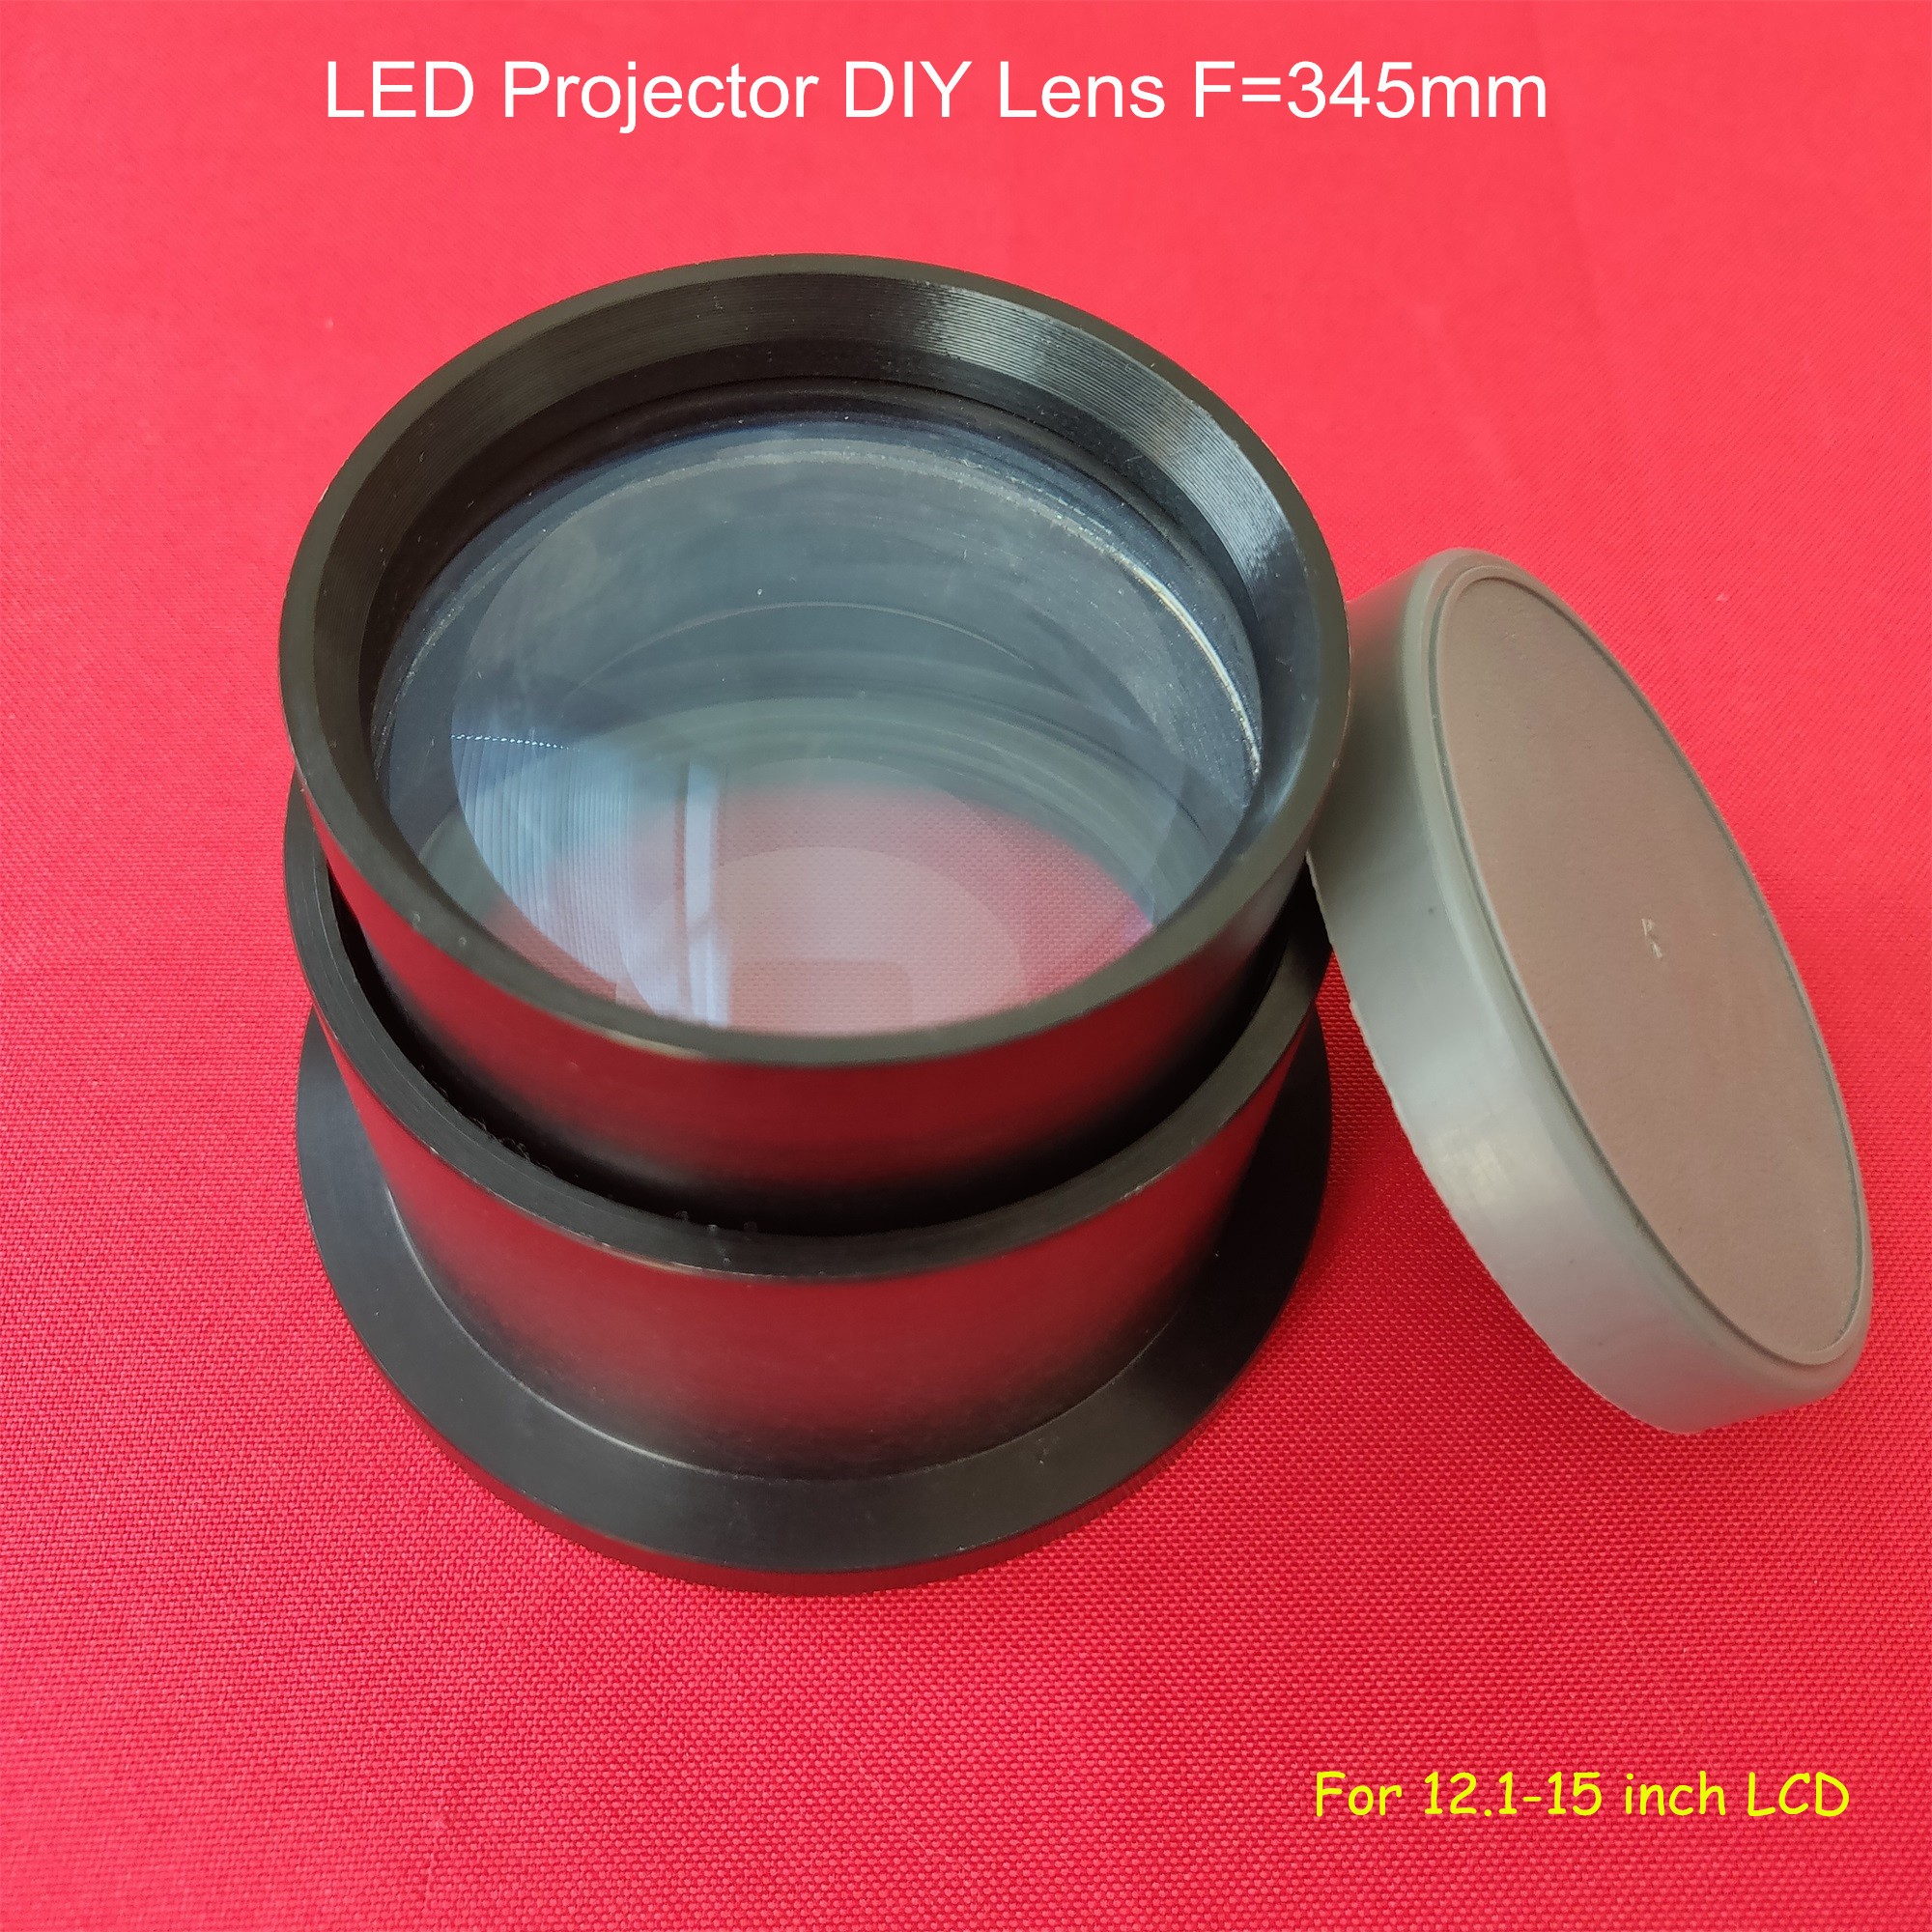 General Use Projection Diy Lens LED Projection DIY Parts F=345mm For Projection LCD 12.1-15 Inch